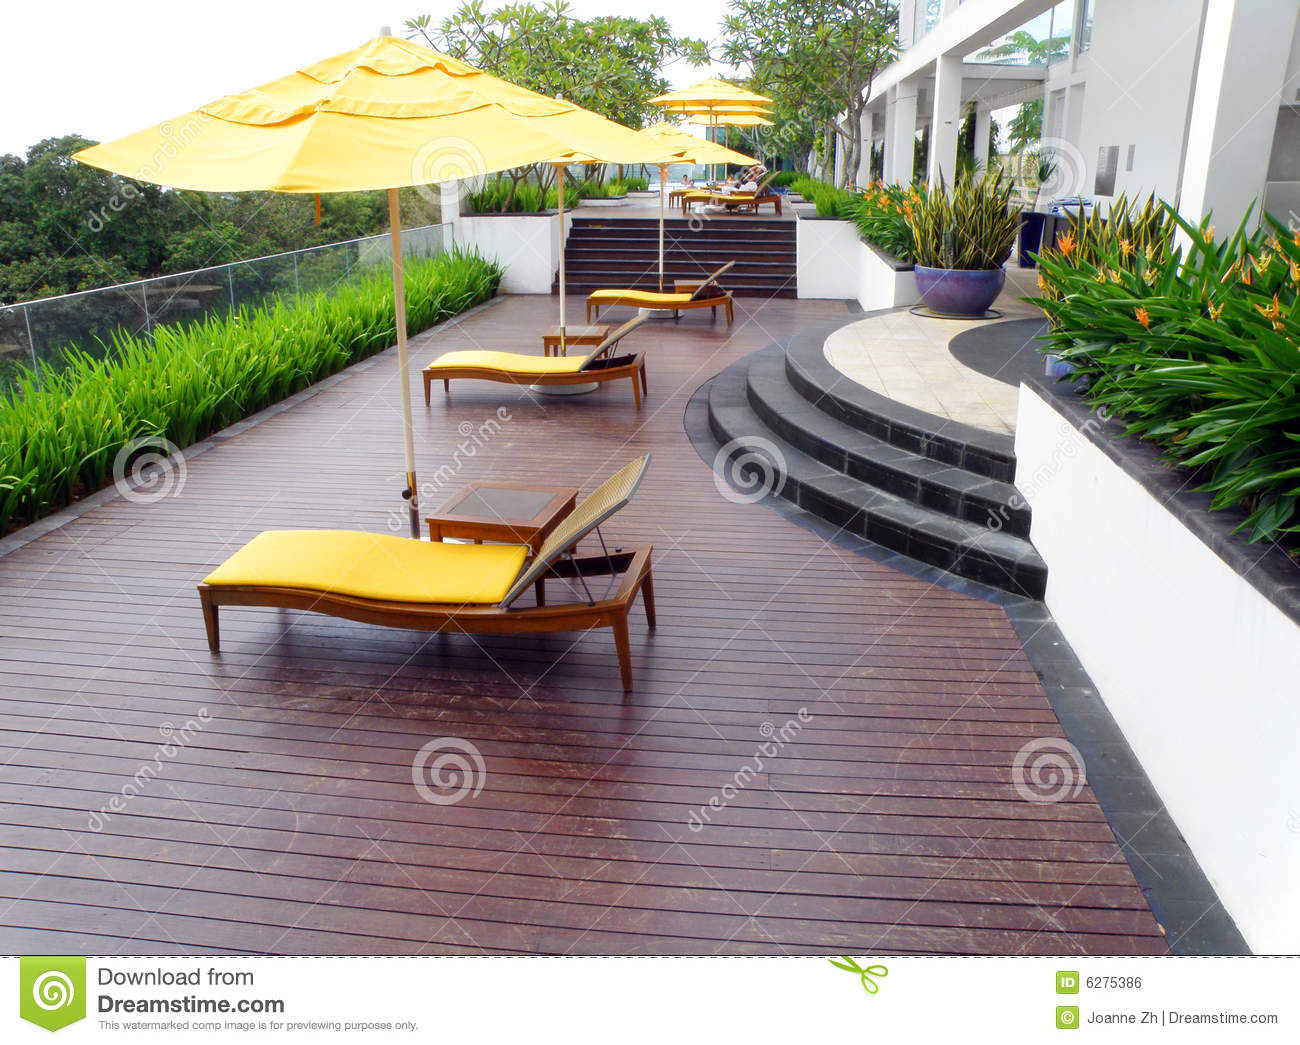 Roof top garden design royalty free stock image image for Rooftop landscape design